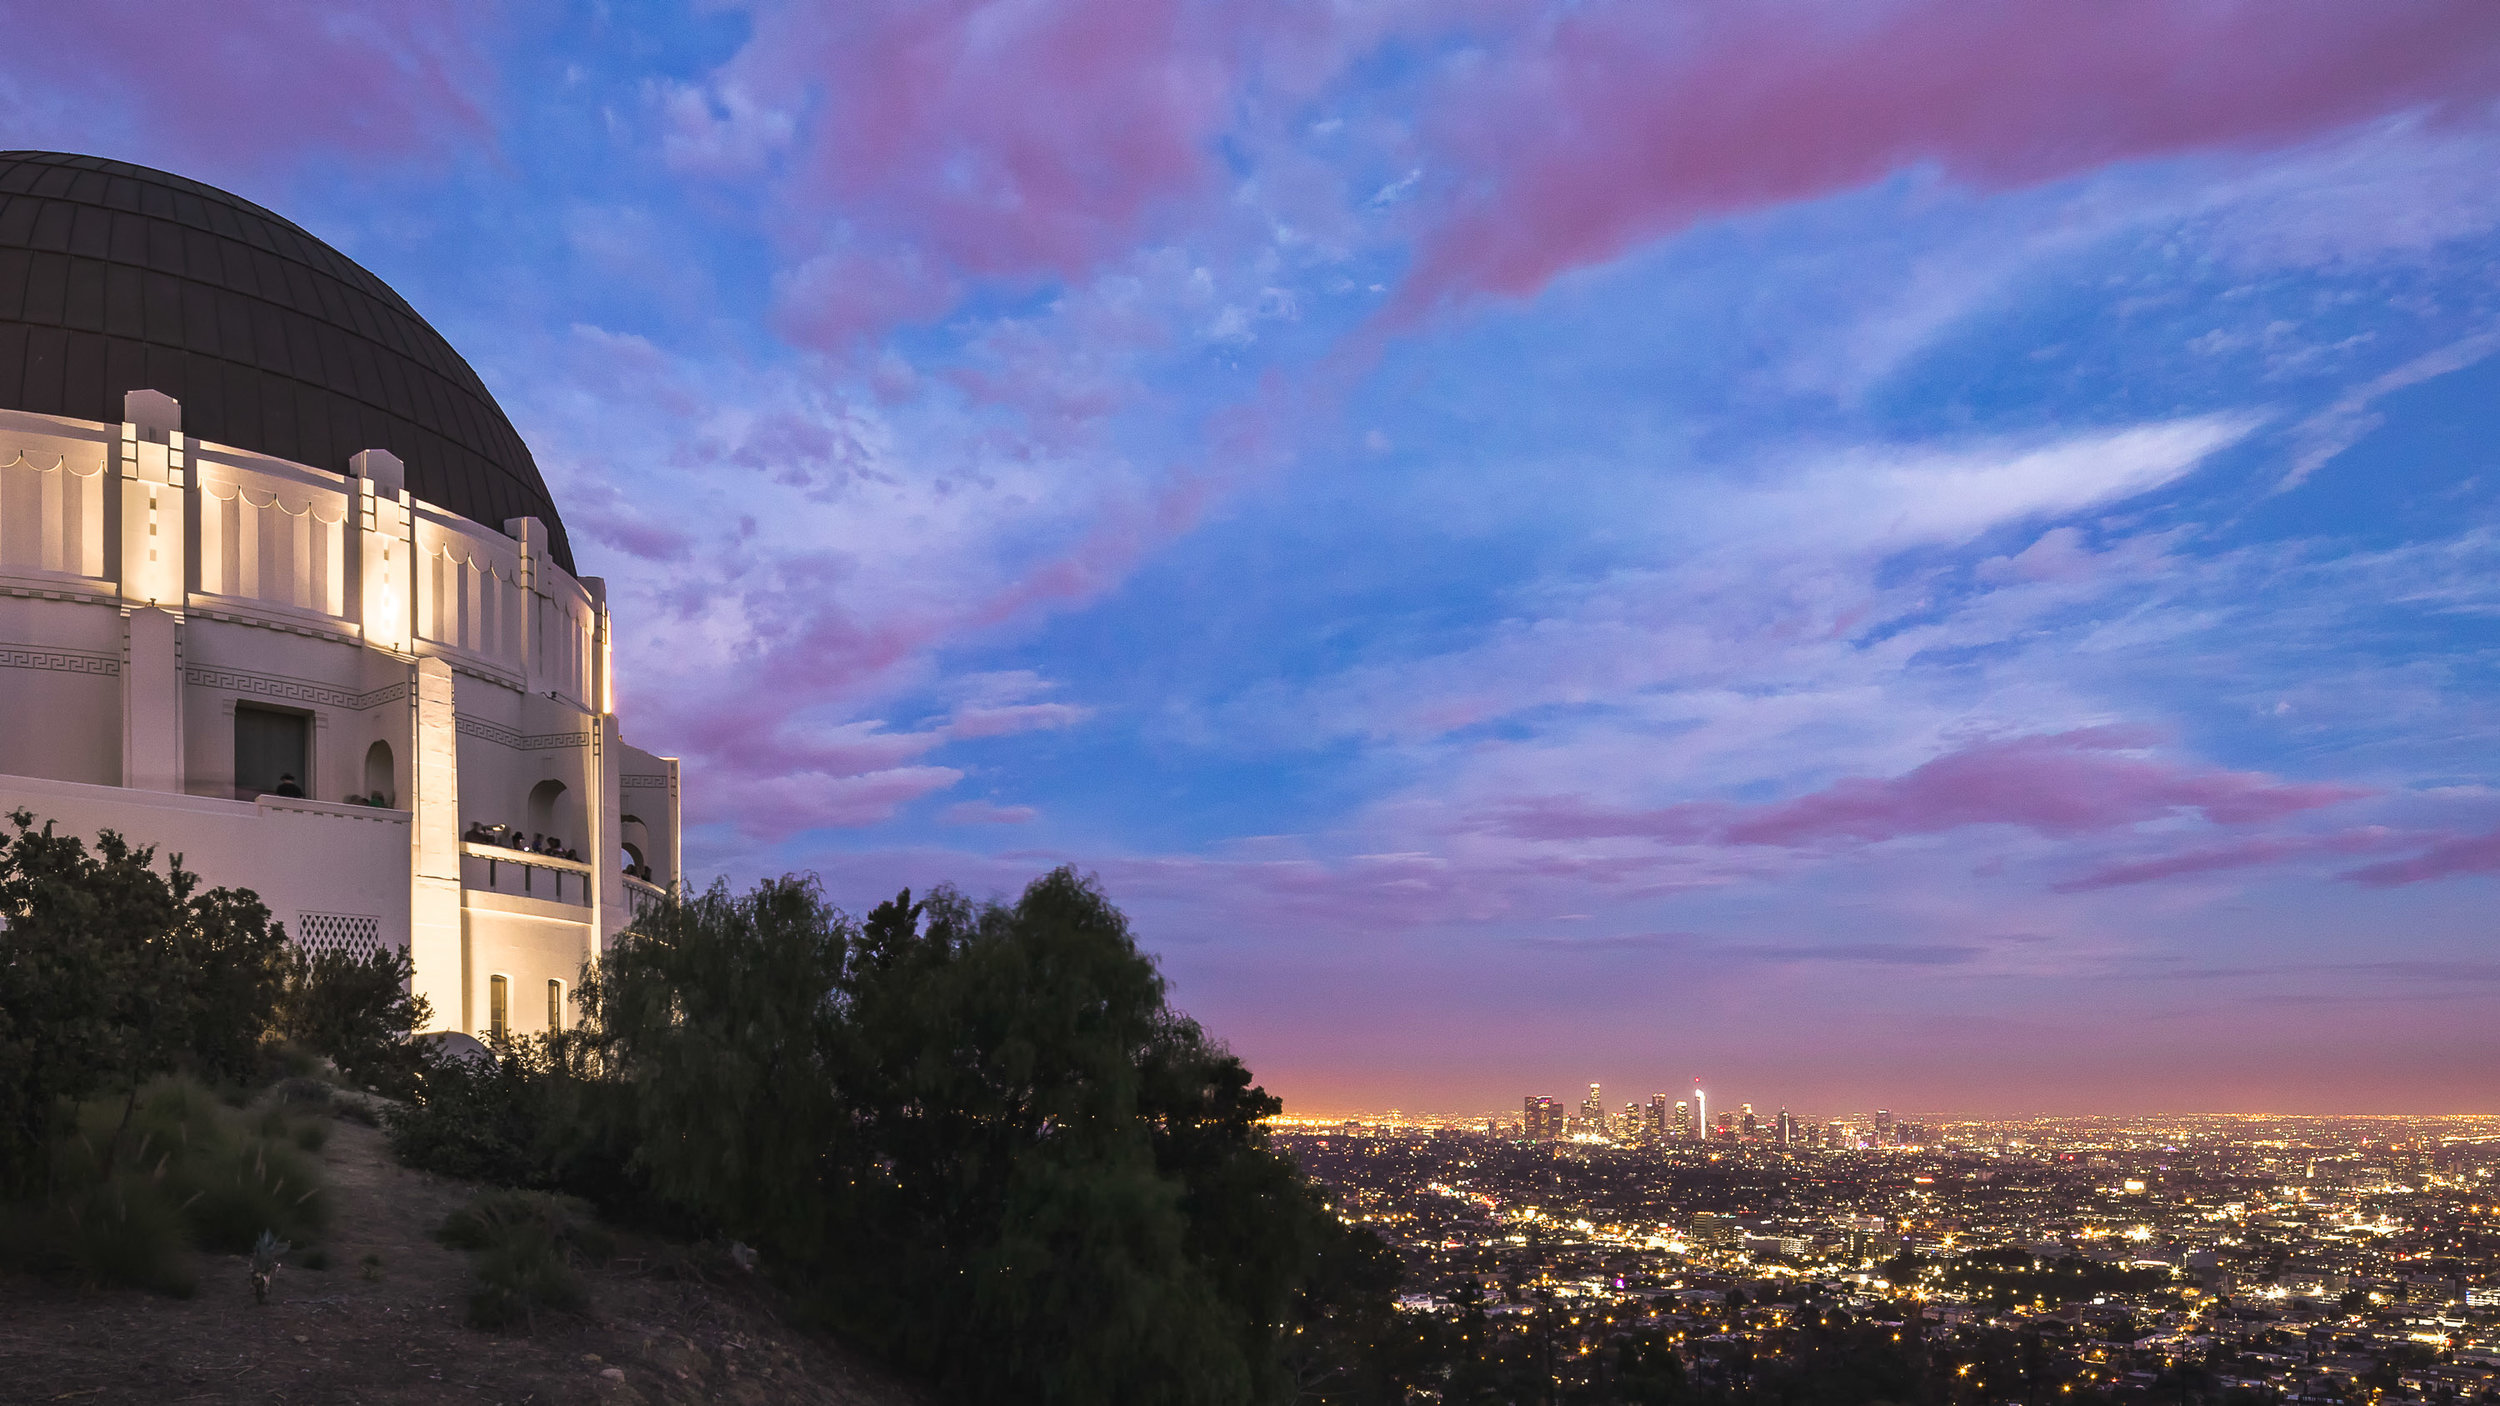 griffith_observatory-0878-Edit.jpg